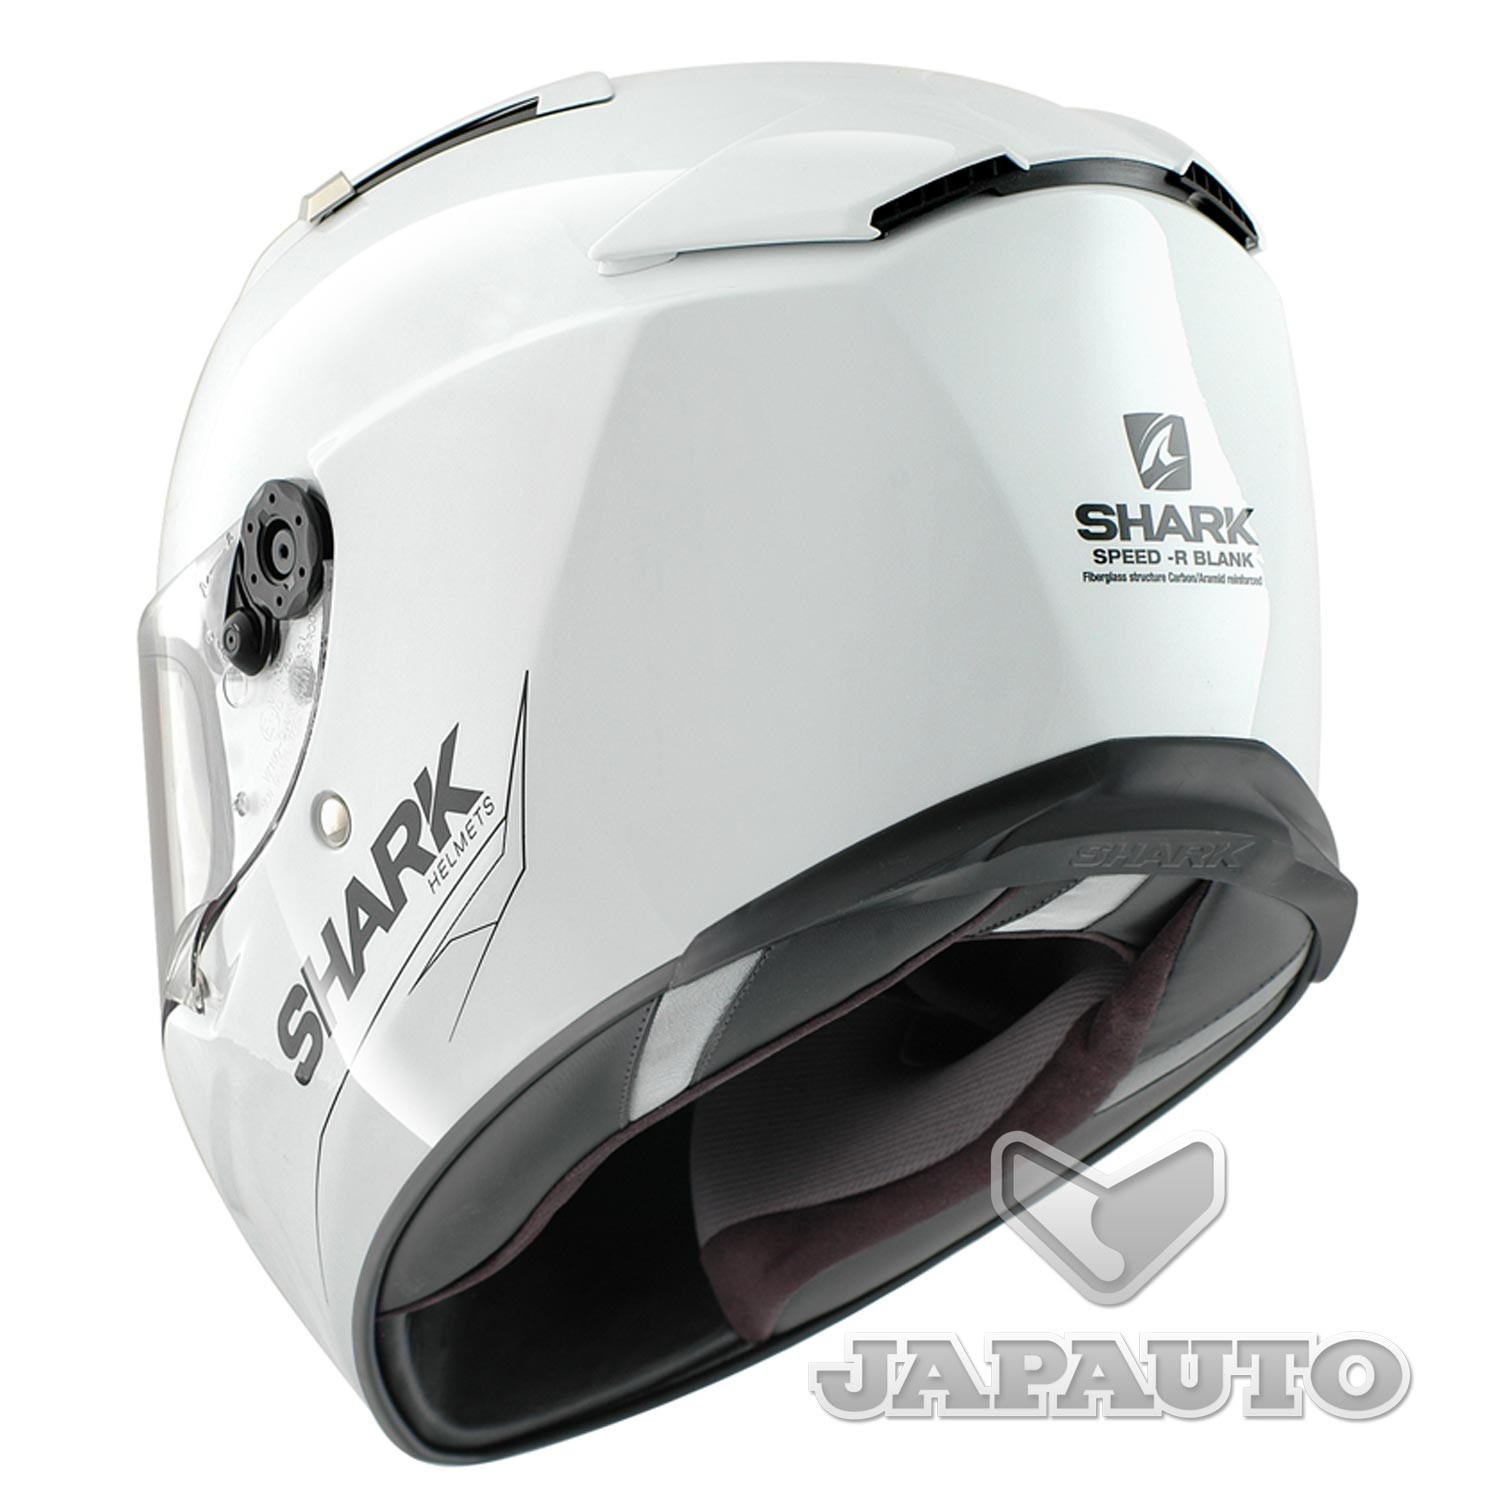 casque int gral shark speed r blanc japauto accessoires equipement pilote pour moto et scooter. Black Bedroom Furniture Sets. Home Design Ideas